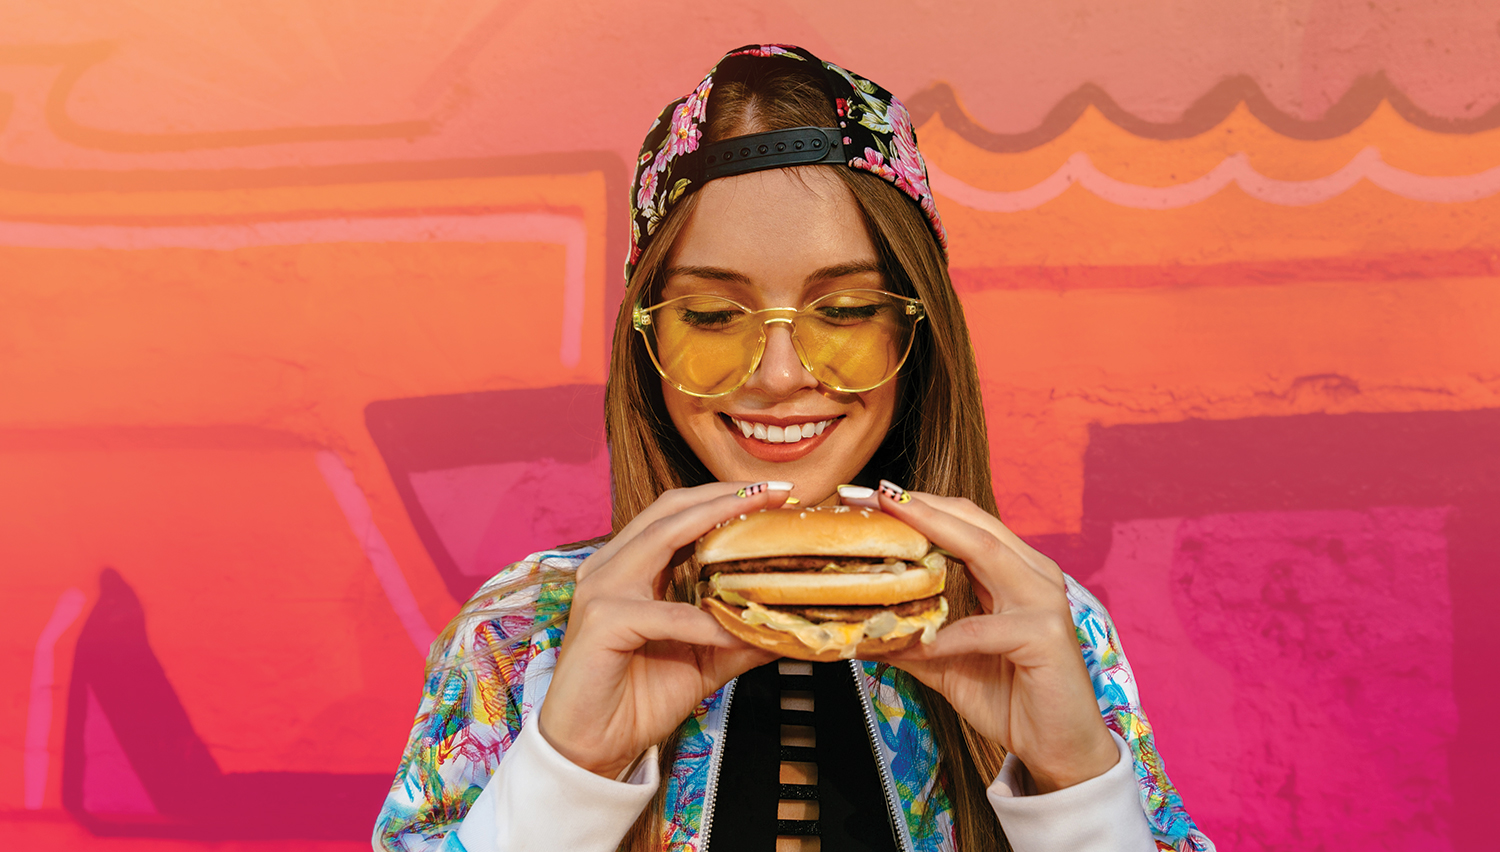 We promise every food picture will be instagrammable. - Dine at New York City's best during #BlogHer19 Creators Summit!